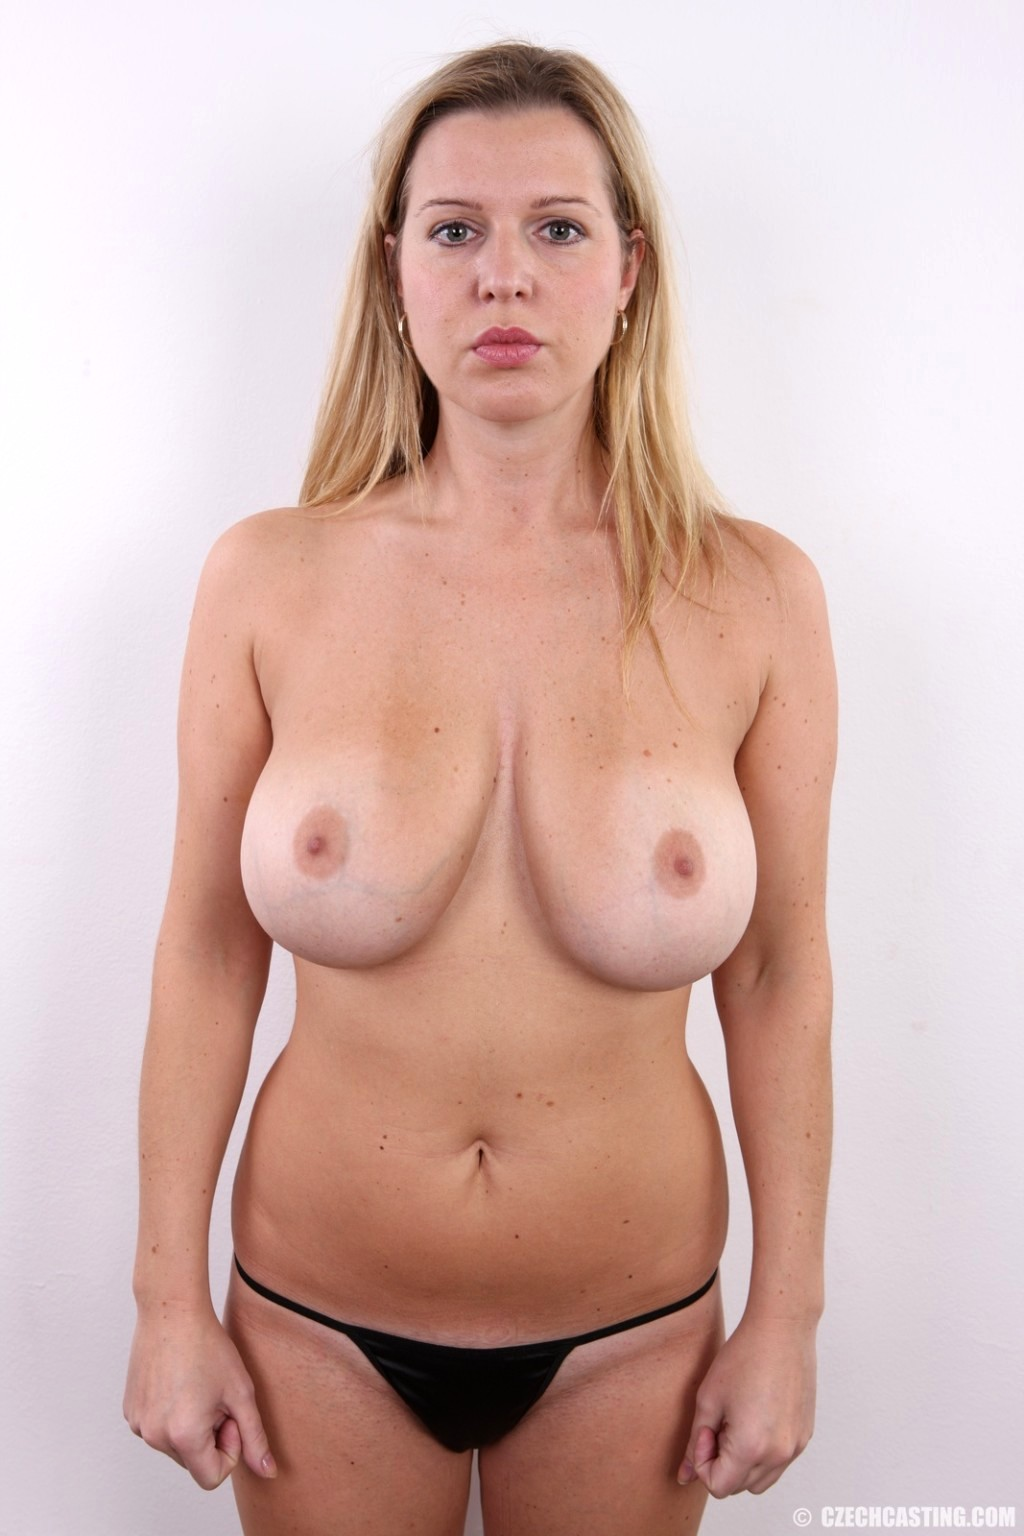 Young Czech Girl Lucie Wilde Shows Her Nice Natural Big Tits